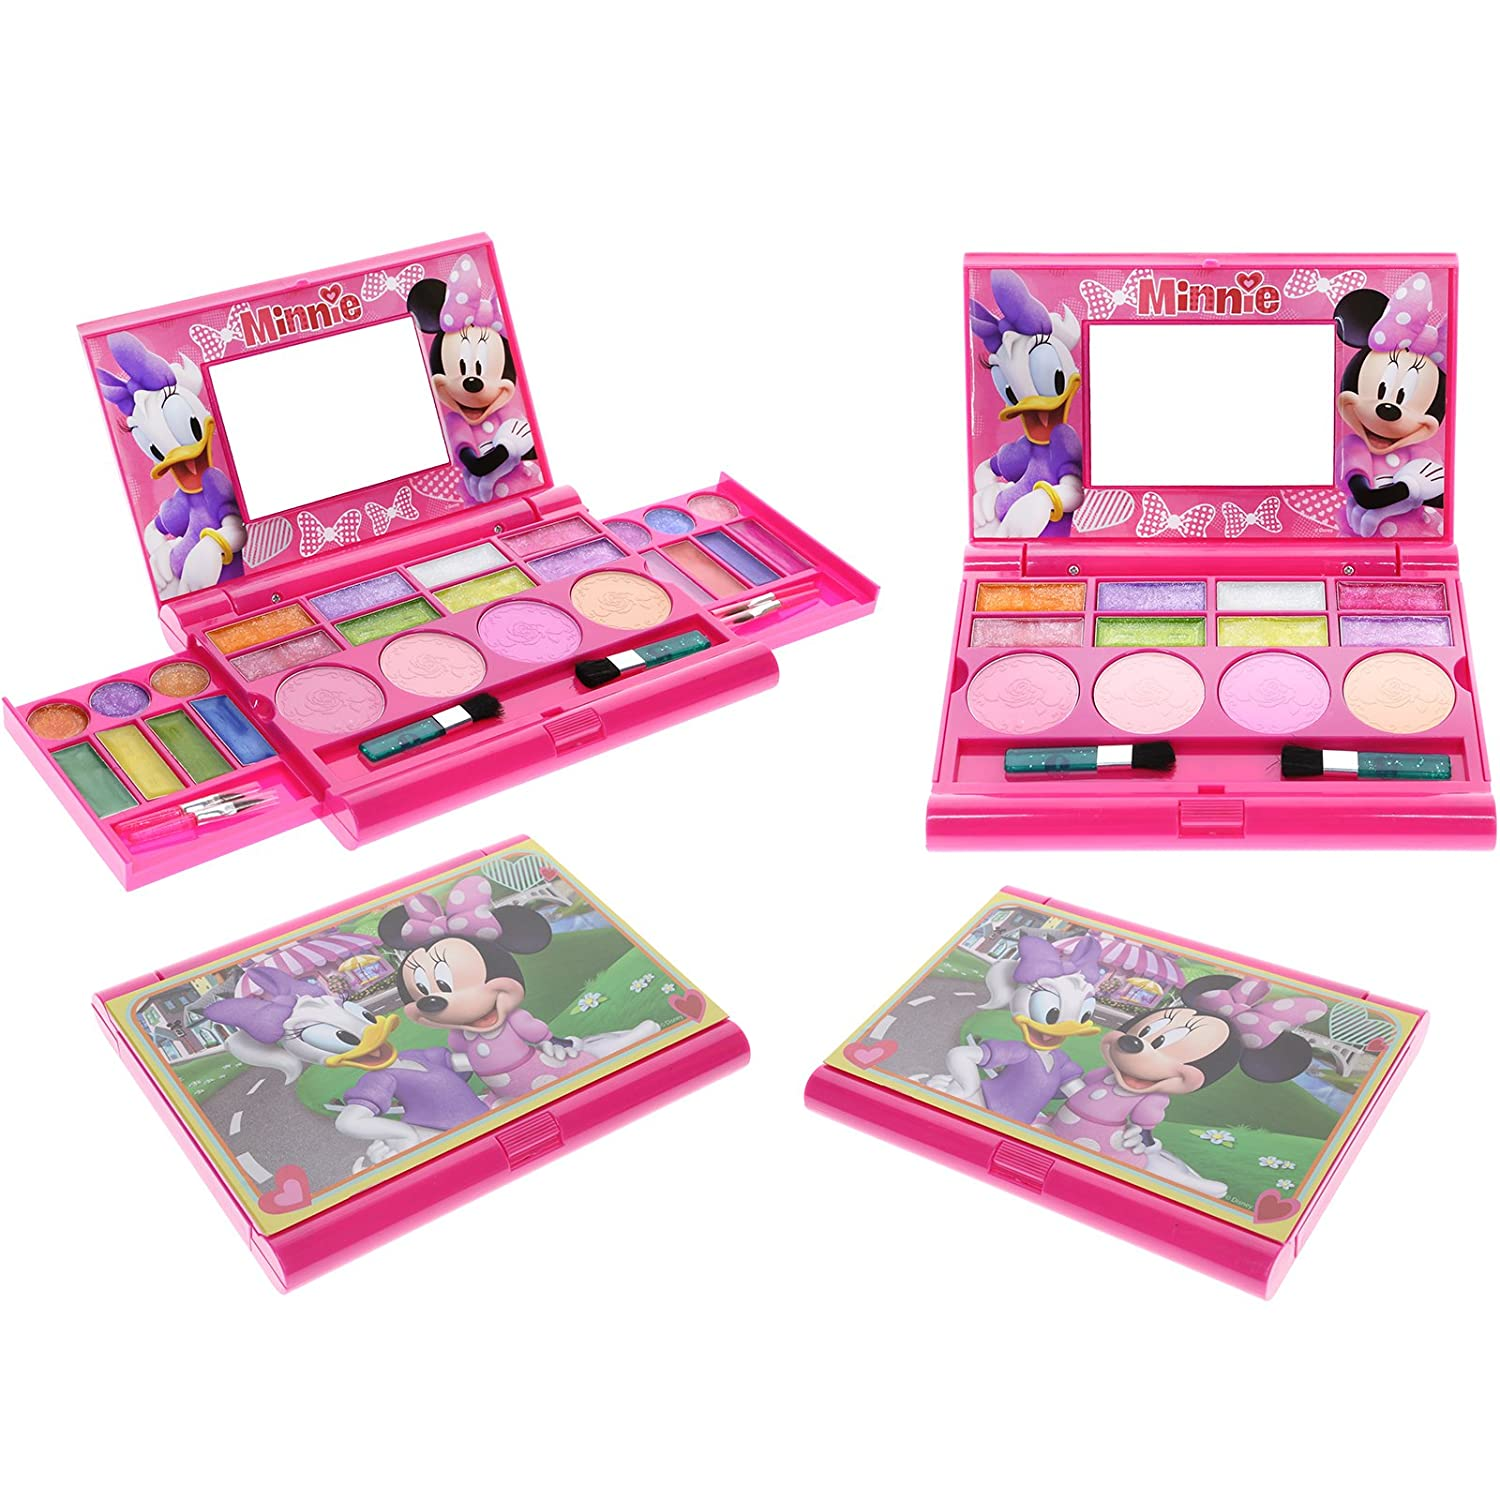 TownleyGirl Townley Girl Disney Minnie Mouse Super Sparkly Cosmetic Set for Girls 22 Lip Glosses 4 Blushes in Mirrored case Townlygirl MB0500SA